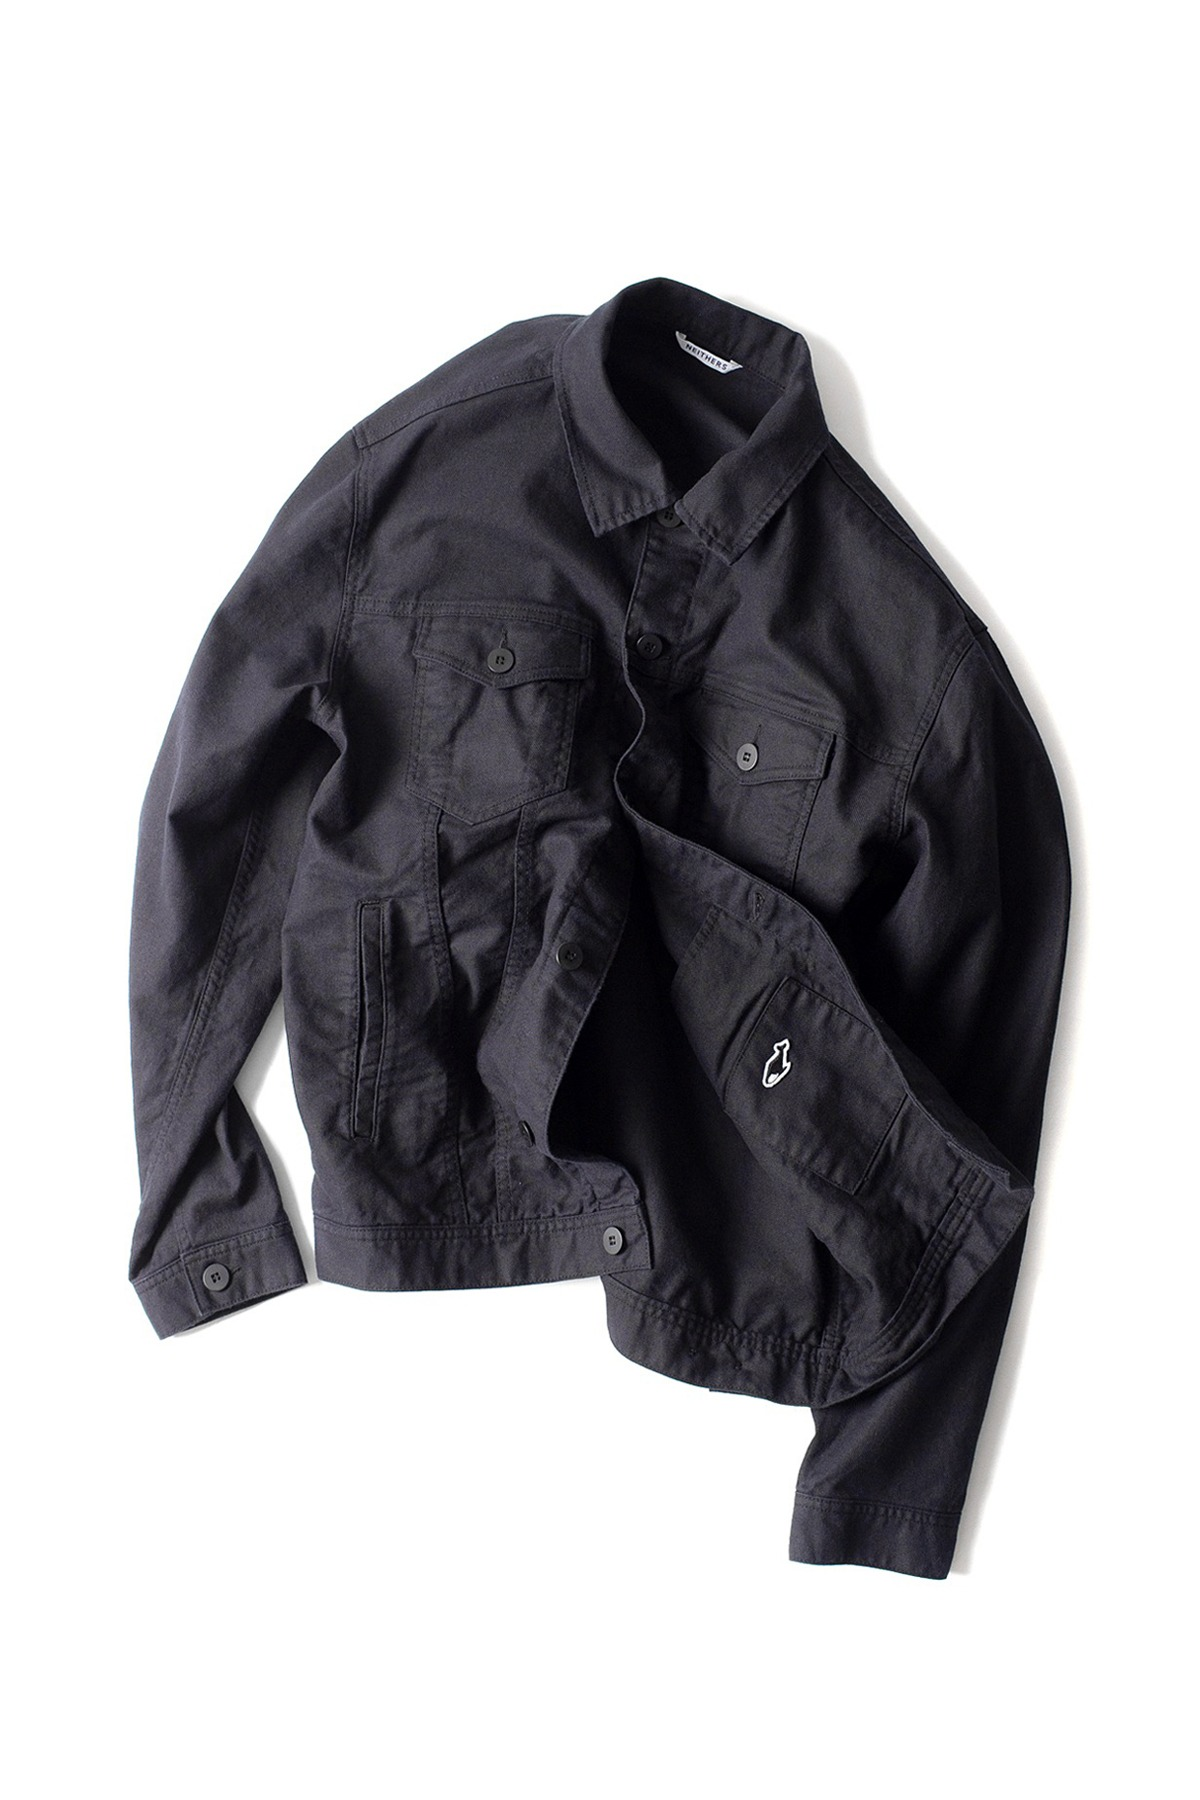 NEITHERS : TYPE-3 Jacket (Balck)